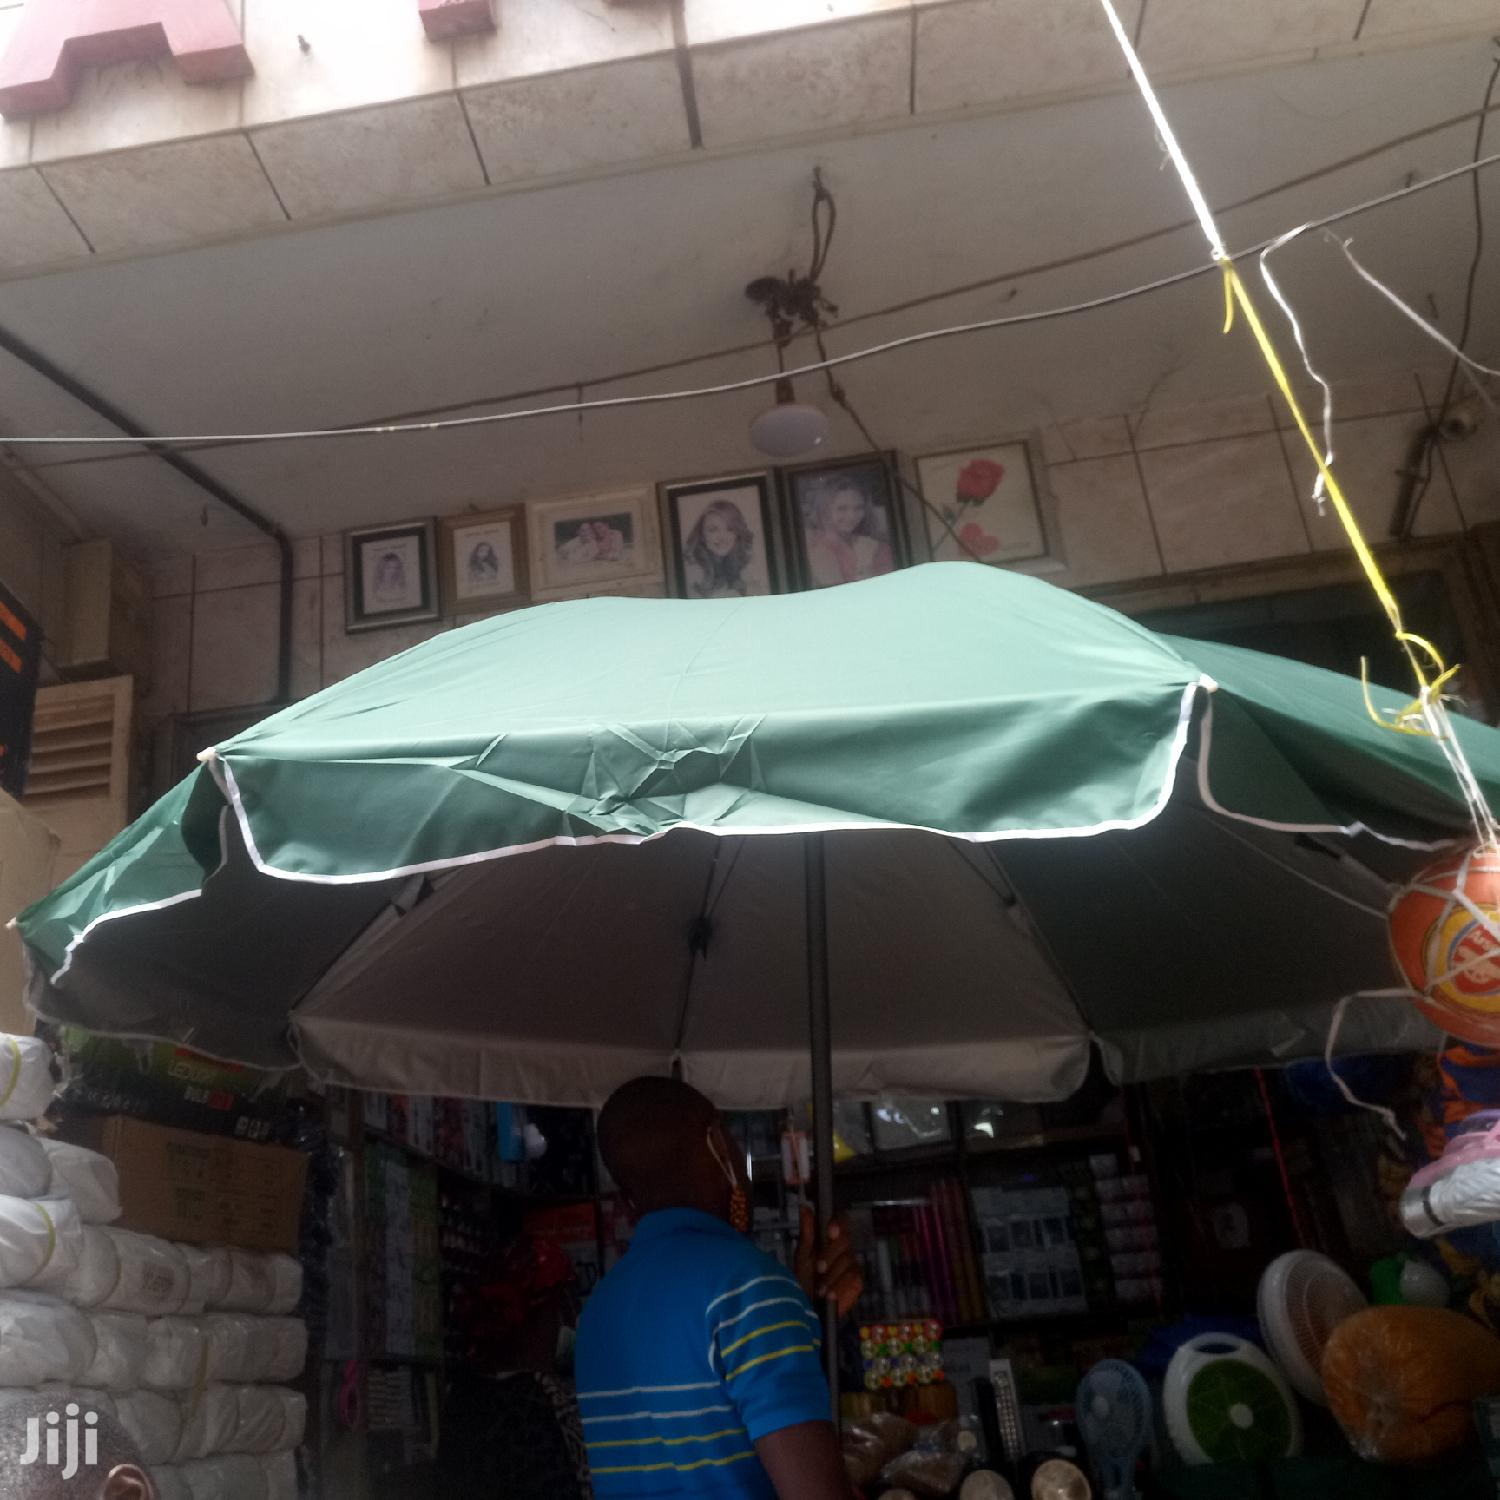 Business, Compound And Leisure Large Umbrella